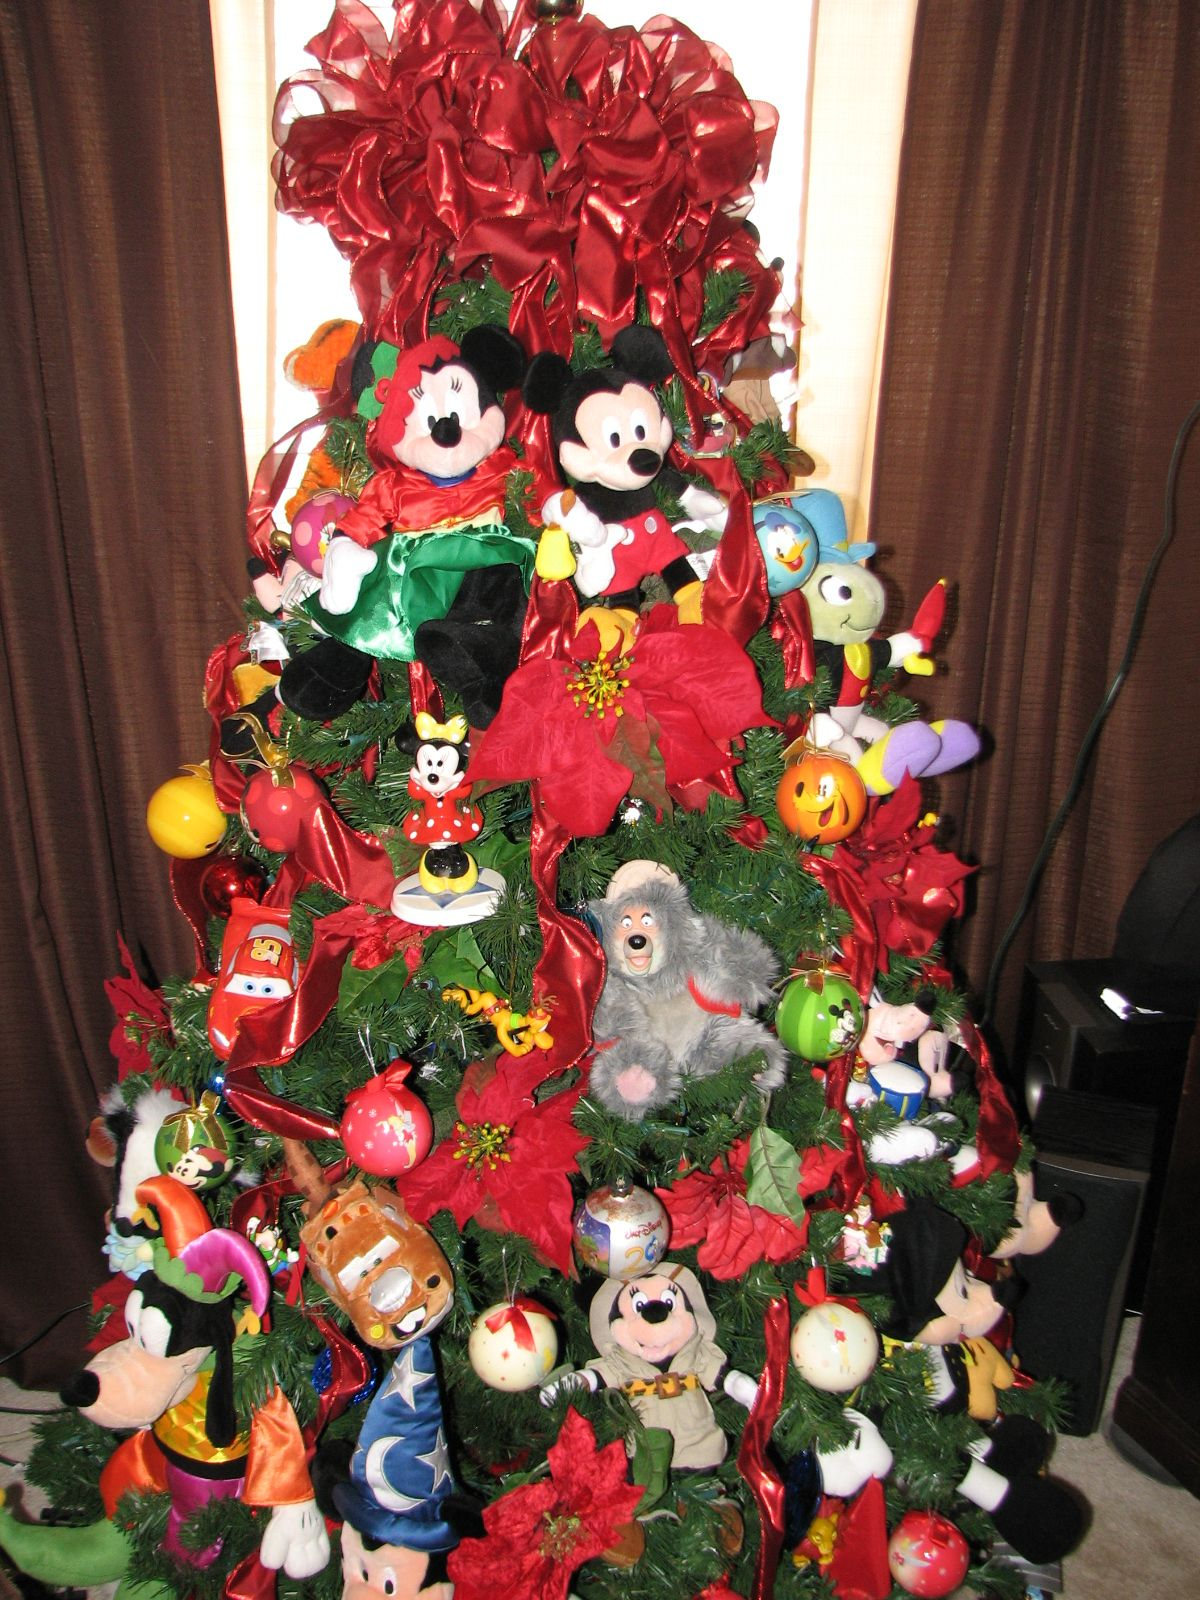 Disney Christmas Tree. Put together with Stuffed Disney Toys found at a  thrift store.